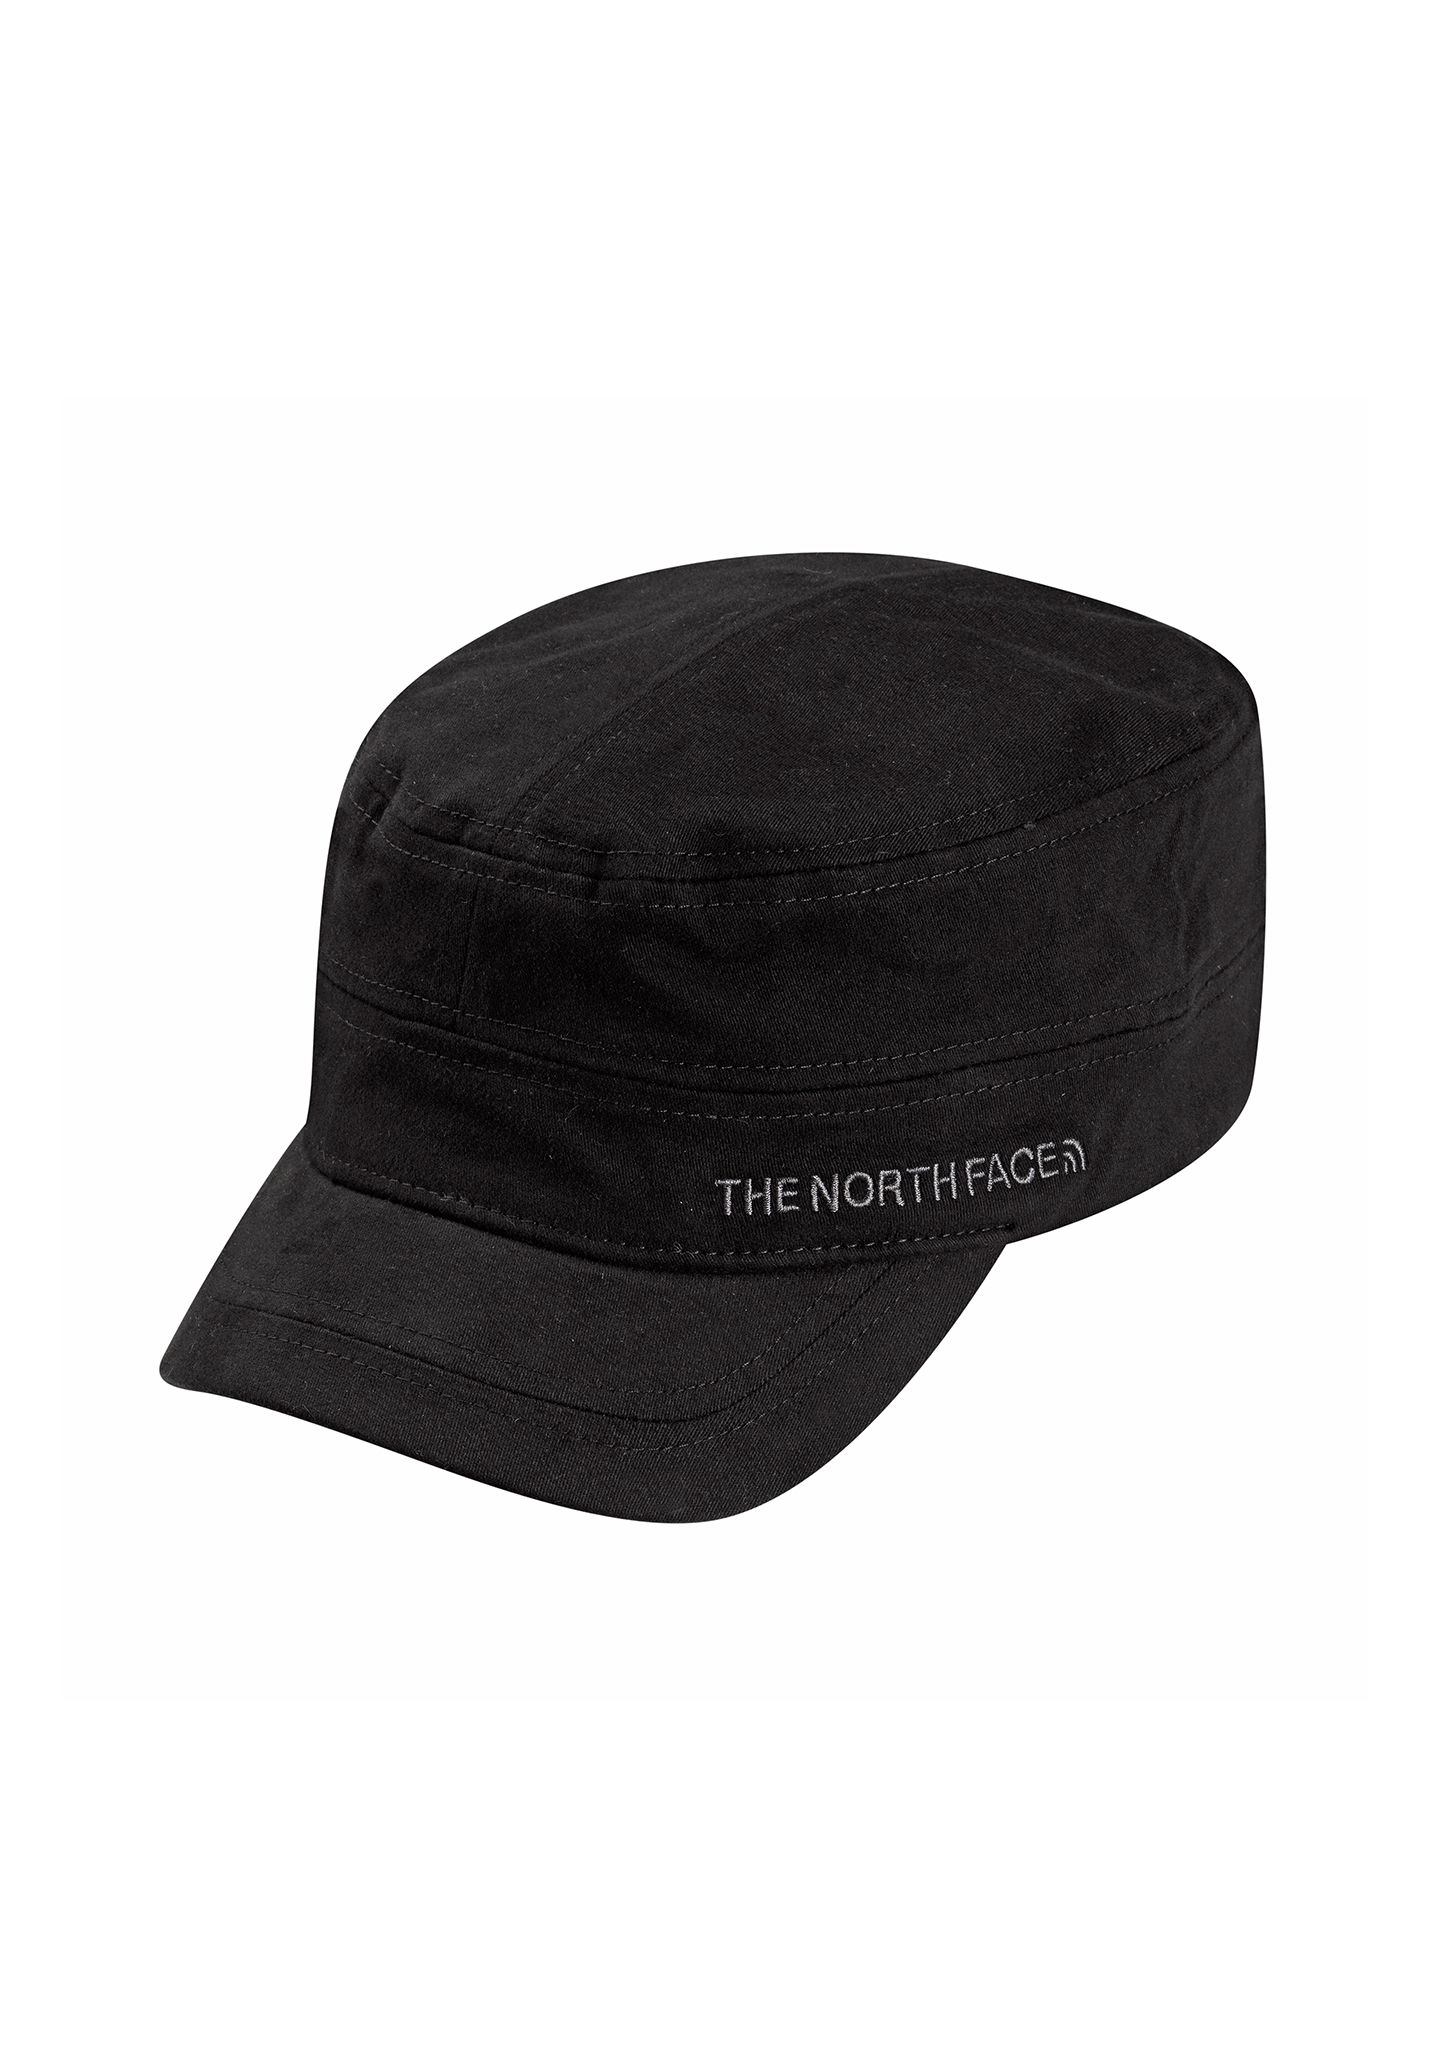 7c691f2d THE NORTH FACE Logo Military - Cap - Black - Planet Sports